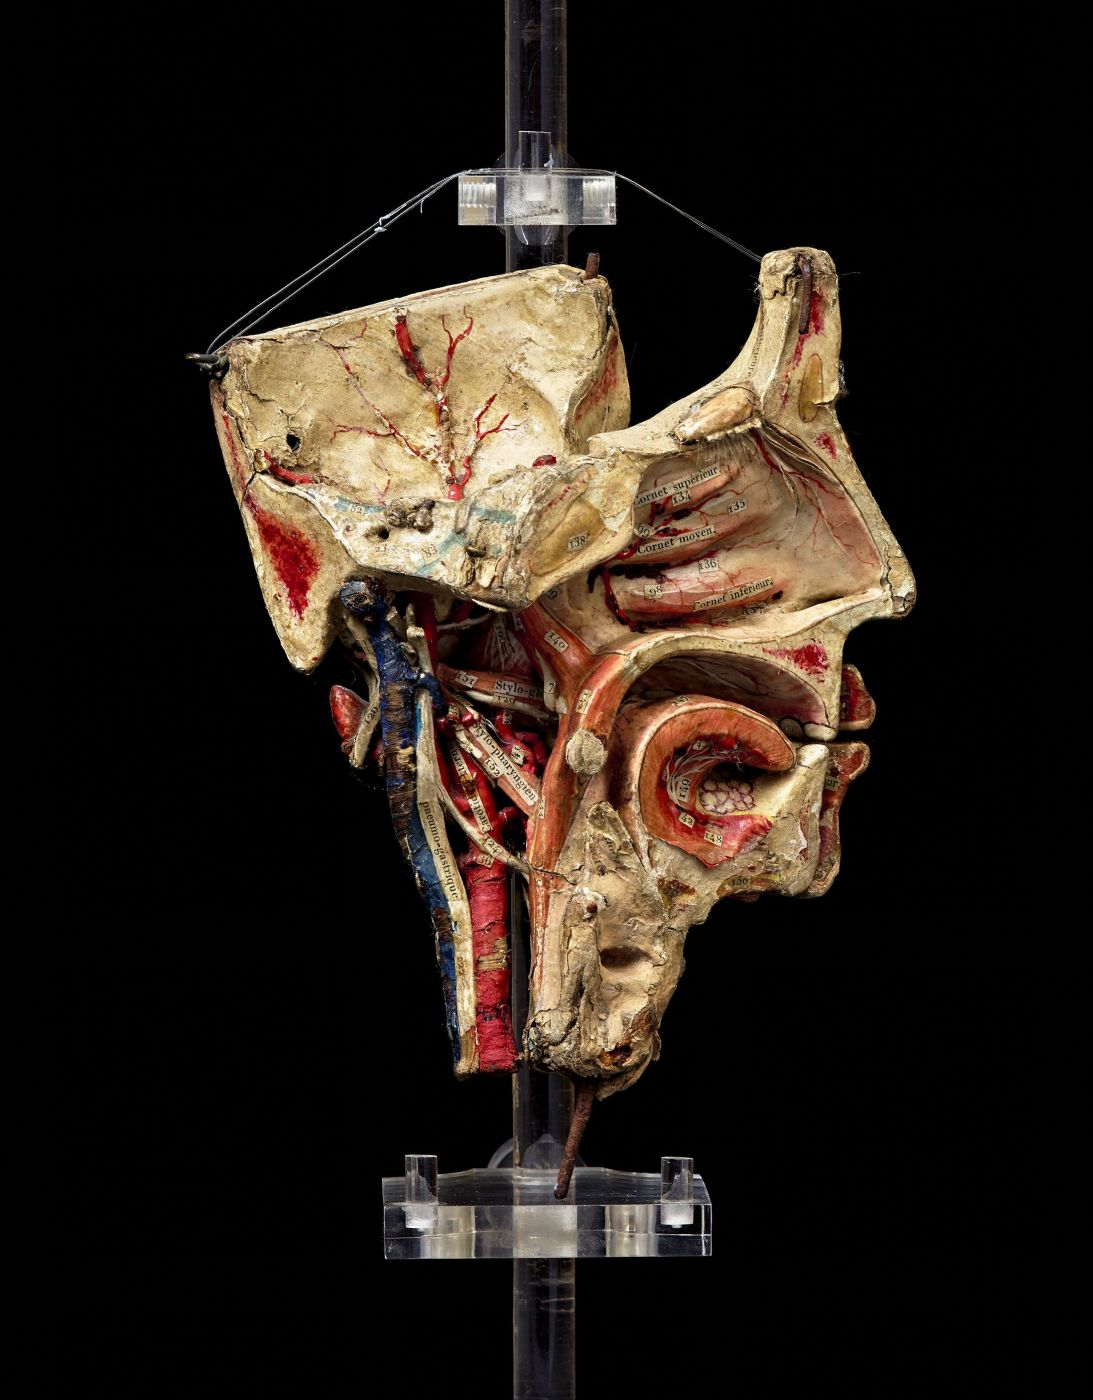 thumb2|19th c. Detachable anatomical  head model  in paper-mâché